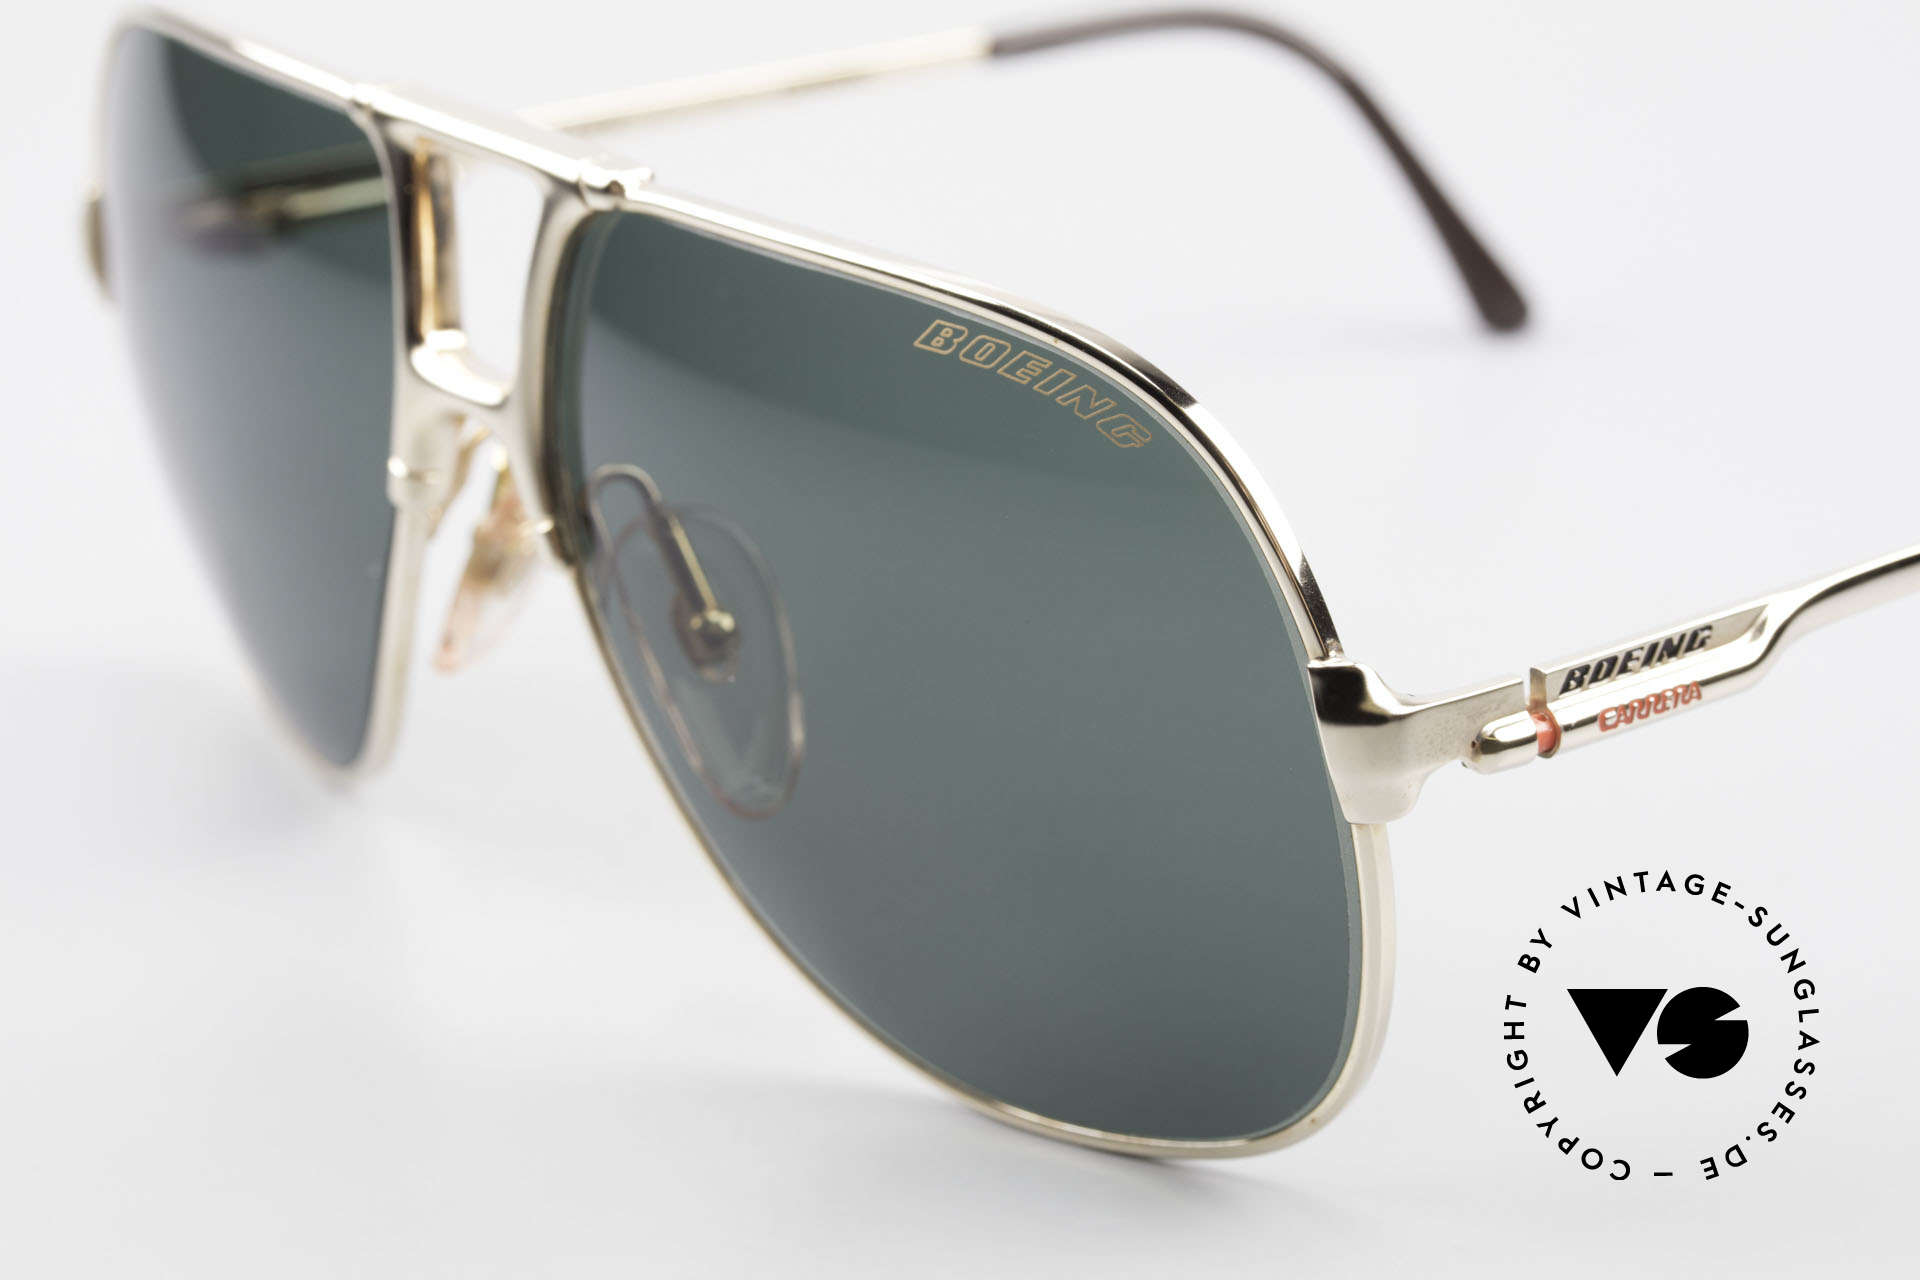 Boeing 5700 Large Old 80's Pilots Shades, LARGE size 62/14; gold-plated & with serial number, Made for Men